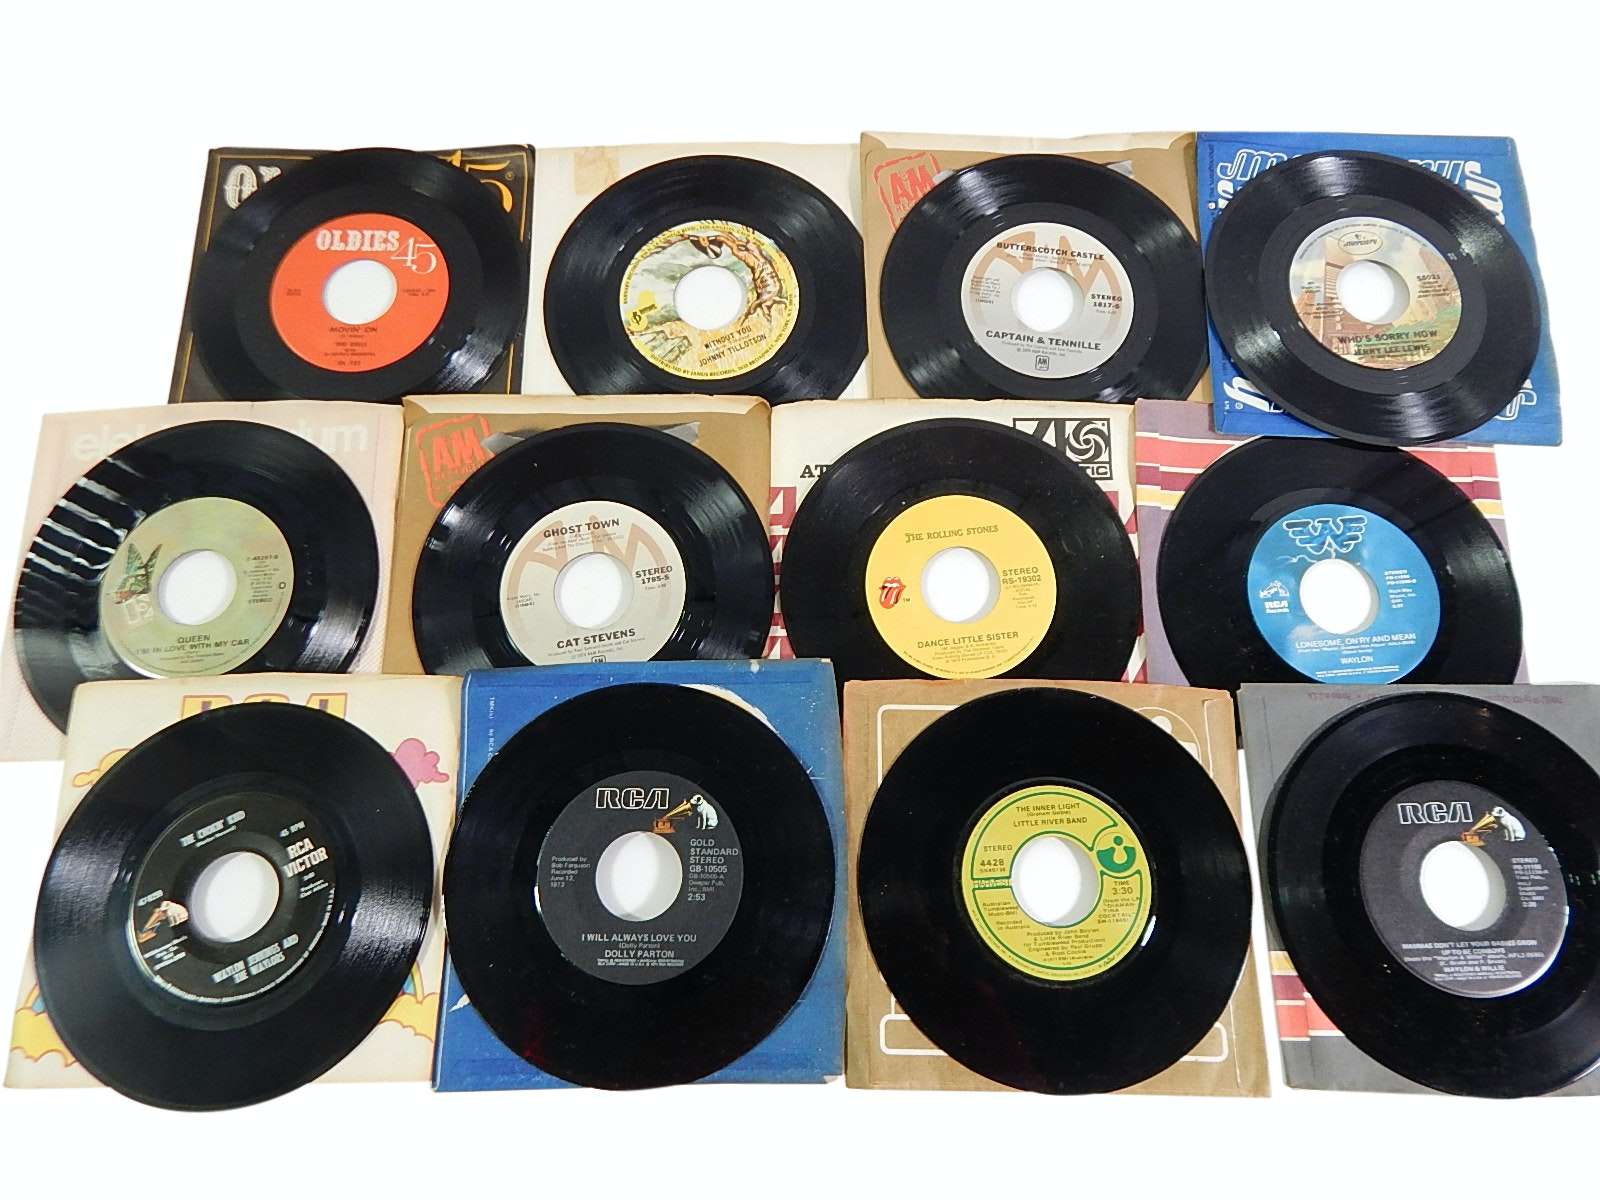 1960s/1970s 45 RPM Records with Country, Rock, Pop,R&B - Queen Bohemian Rhapsody